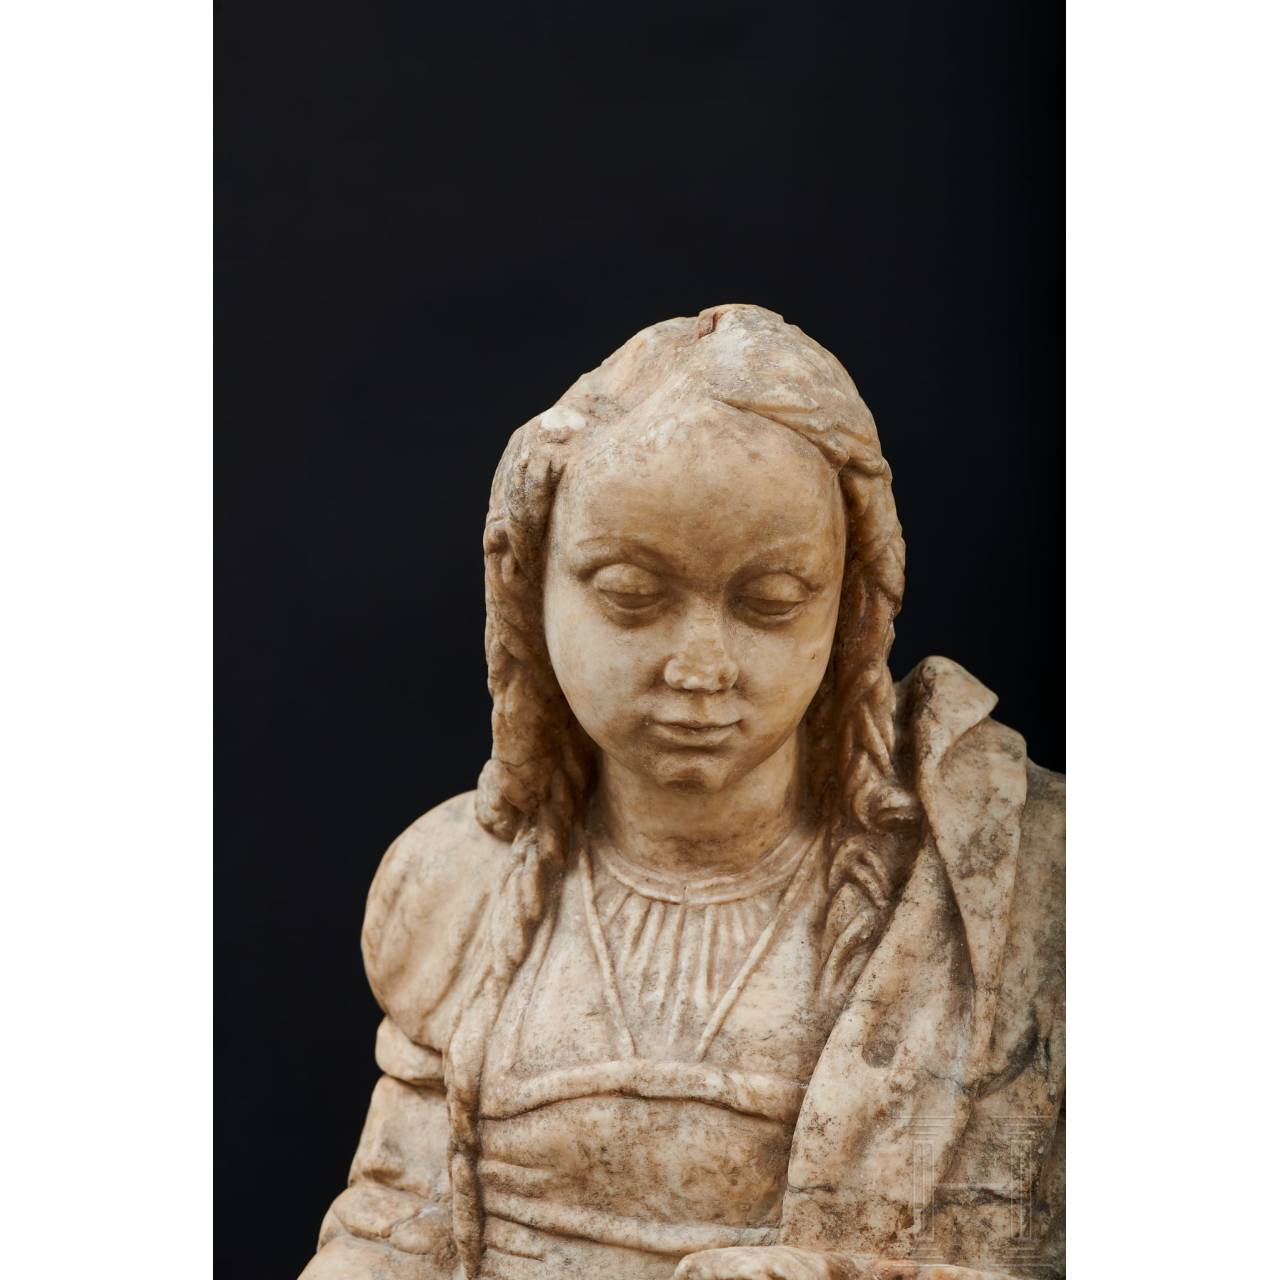 A North French Madonna in alabaster, 16th century